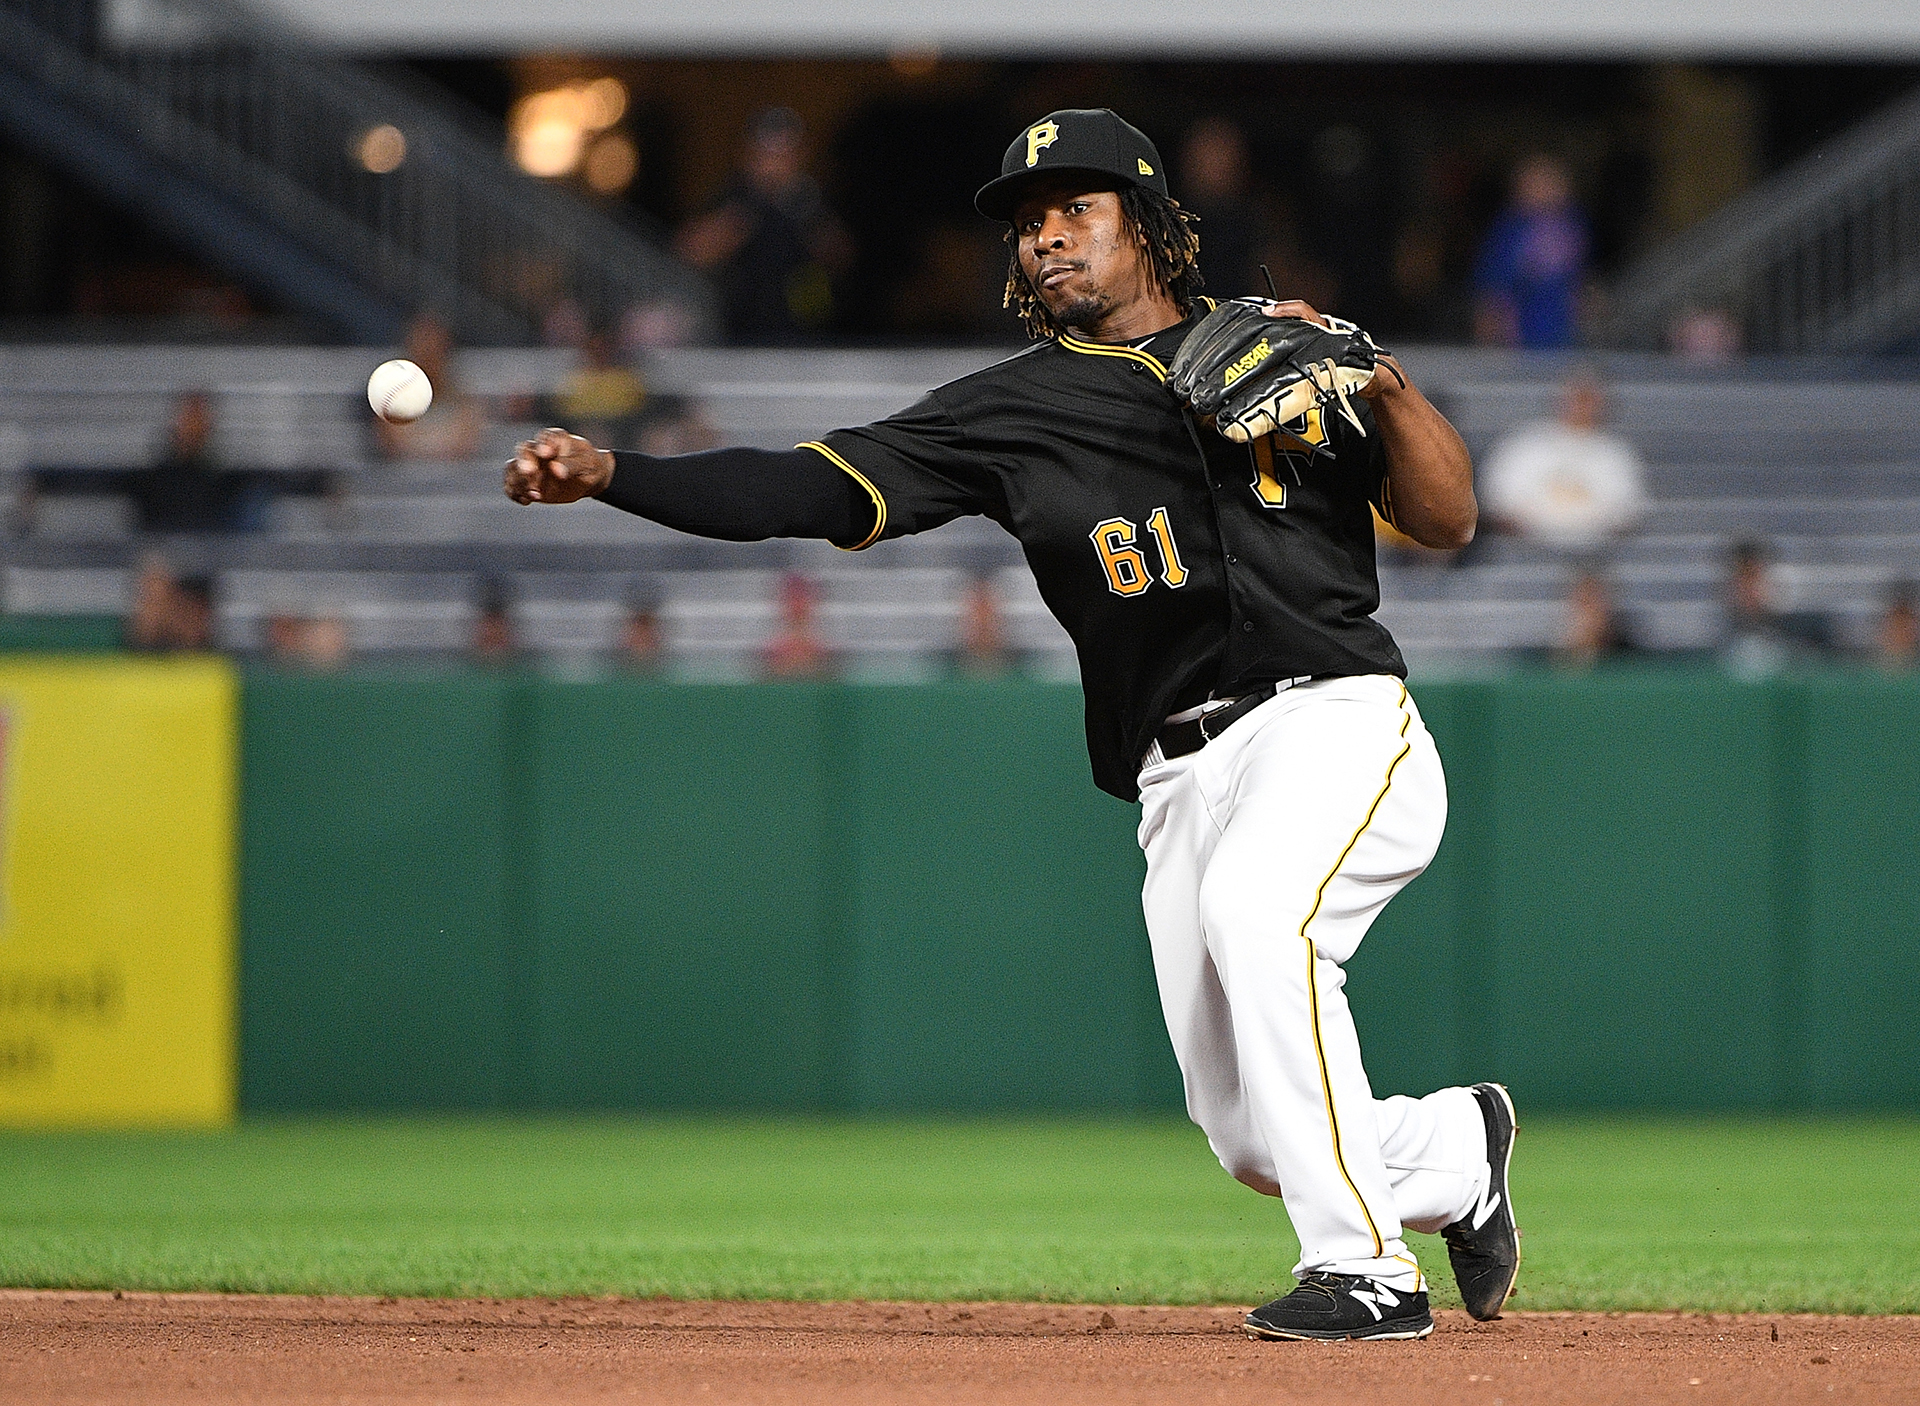 Blue Jays acquire Gift Ngoepe from the Pirates